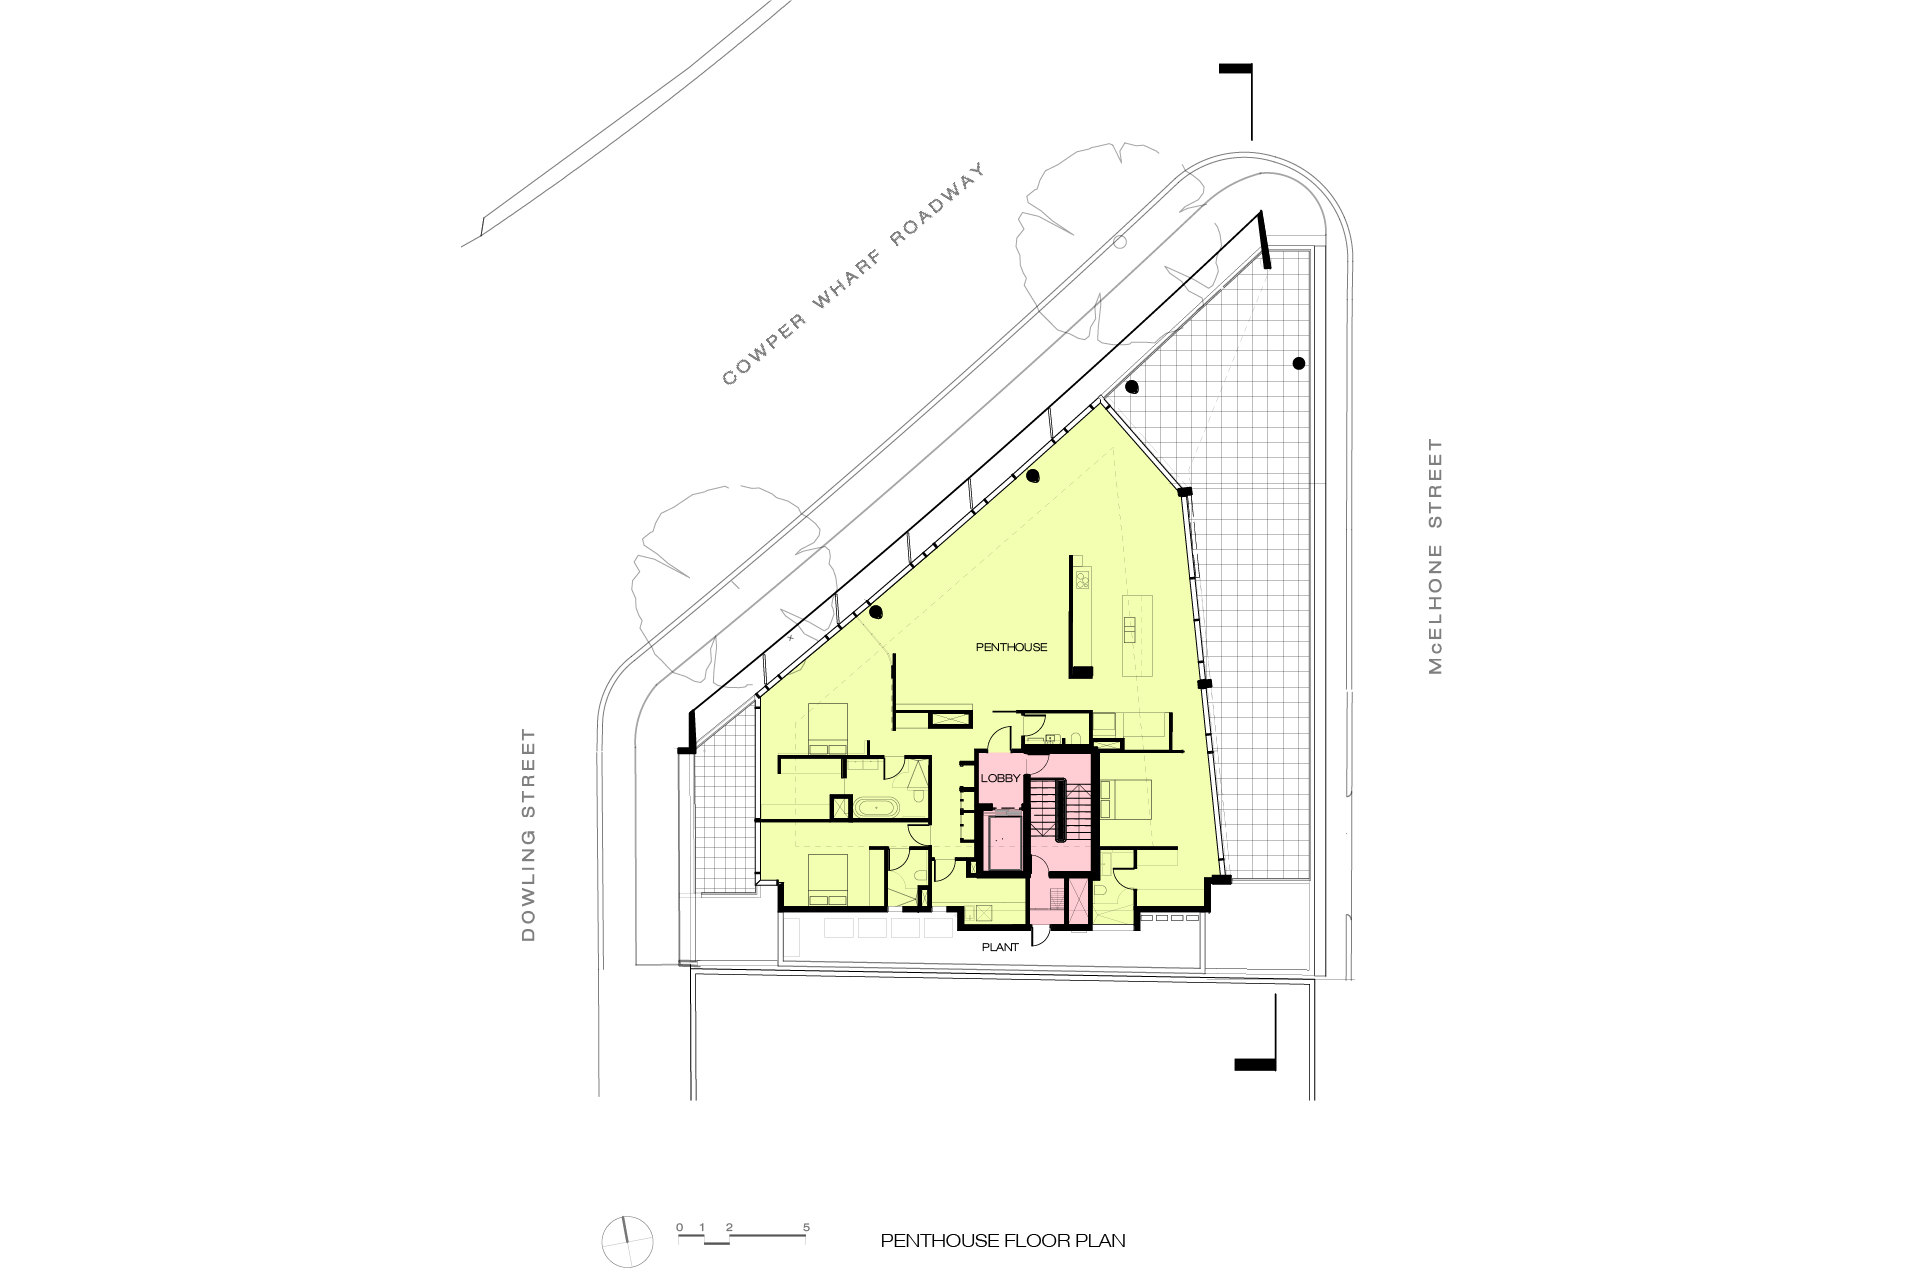 The-Anchorage_Penthouse-Floor-Plan.jpg